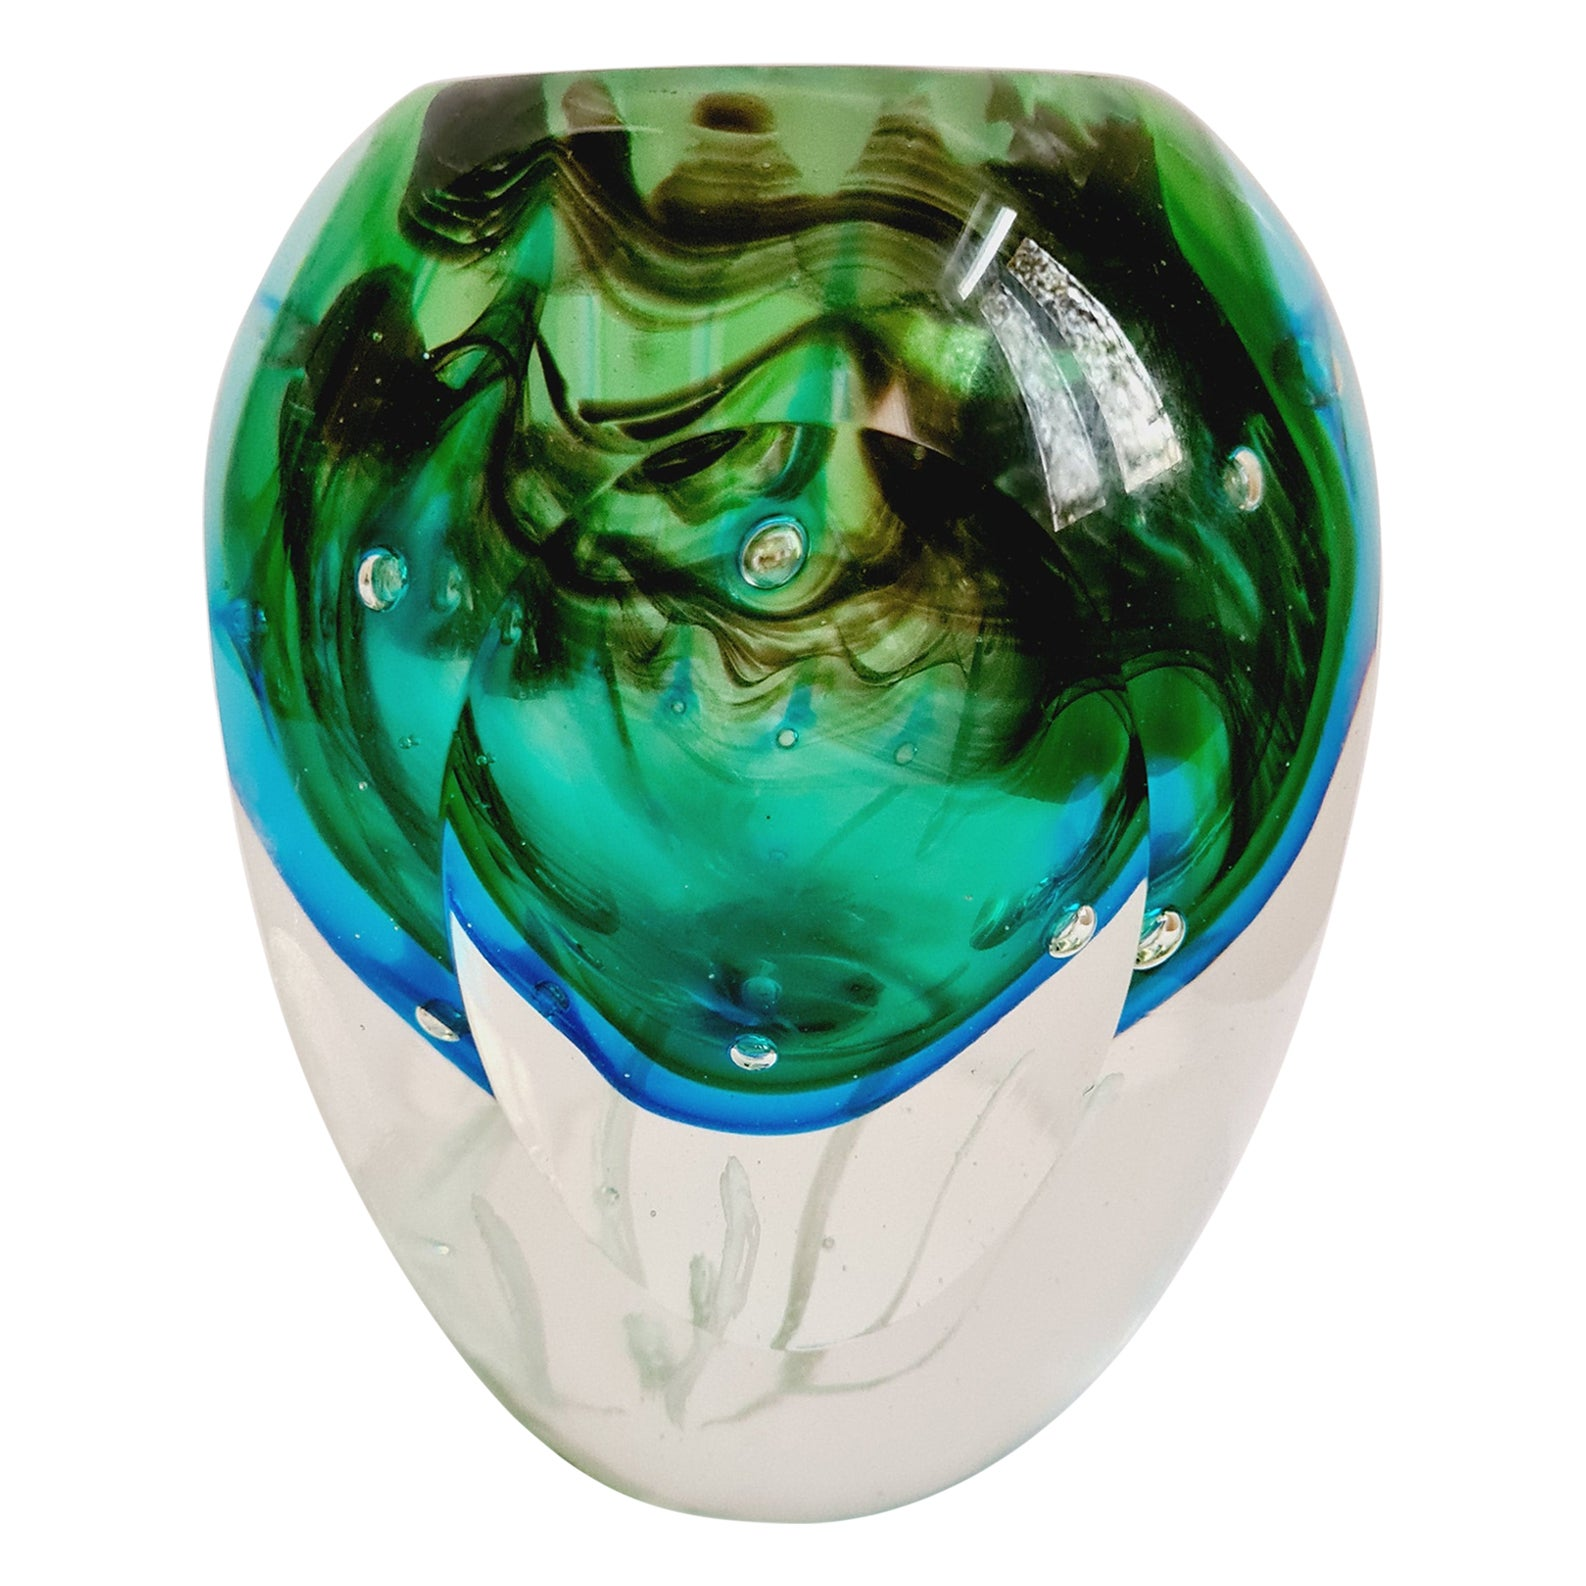 Murano Glass Faceted Sommerso Vase Signed by Flavio Poli